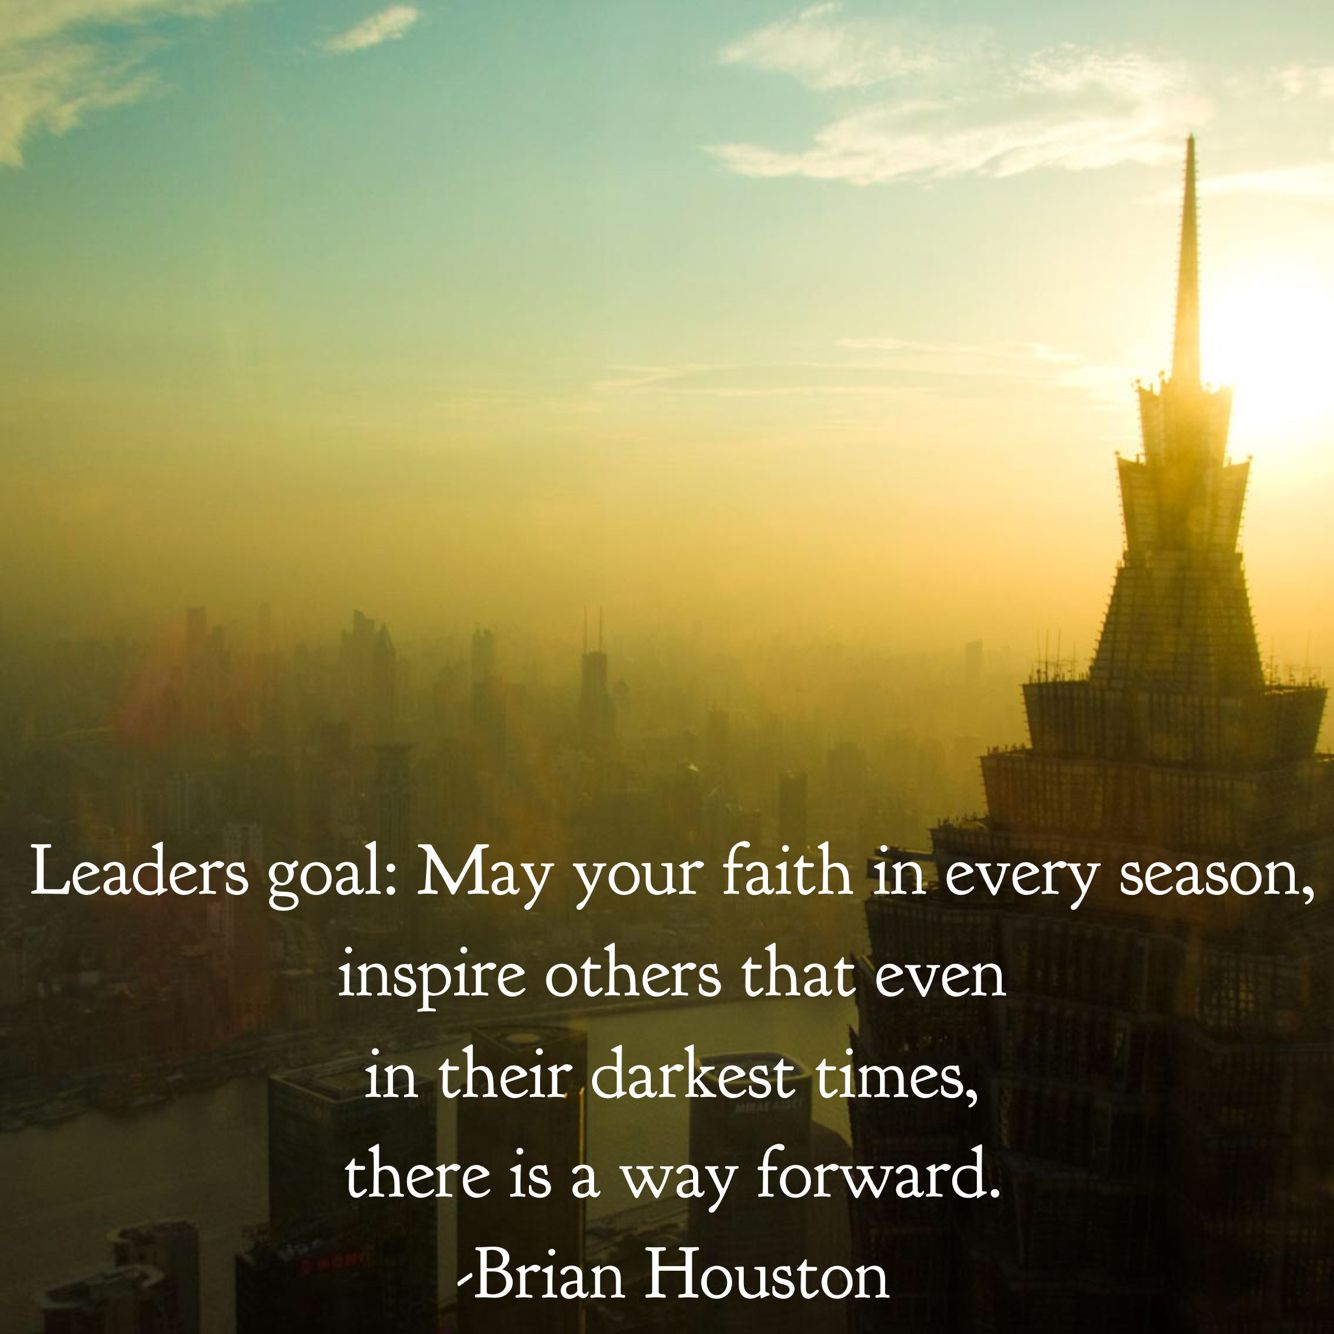 Quotes About Inspiring Others Leaders Goal May Your Faith In Every Season Inspire Others That